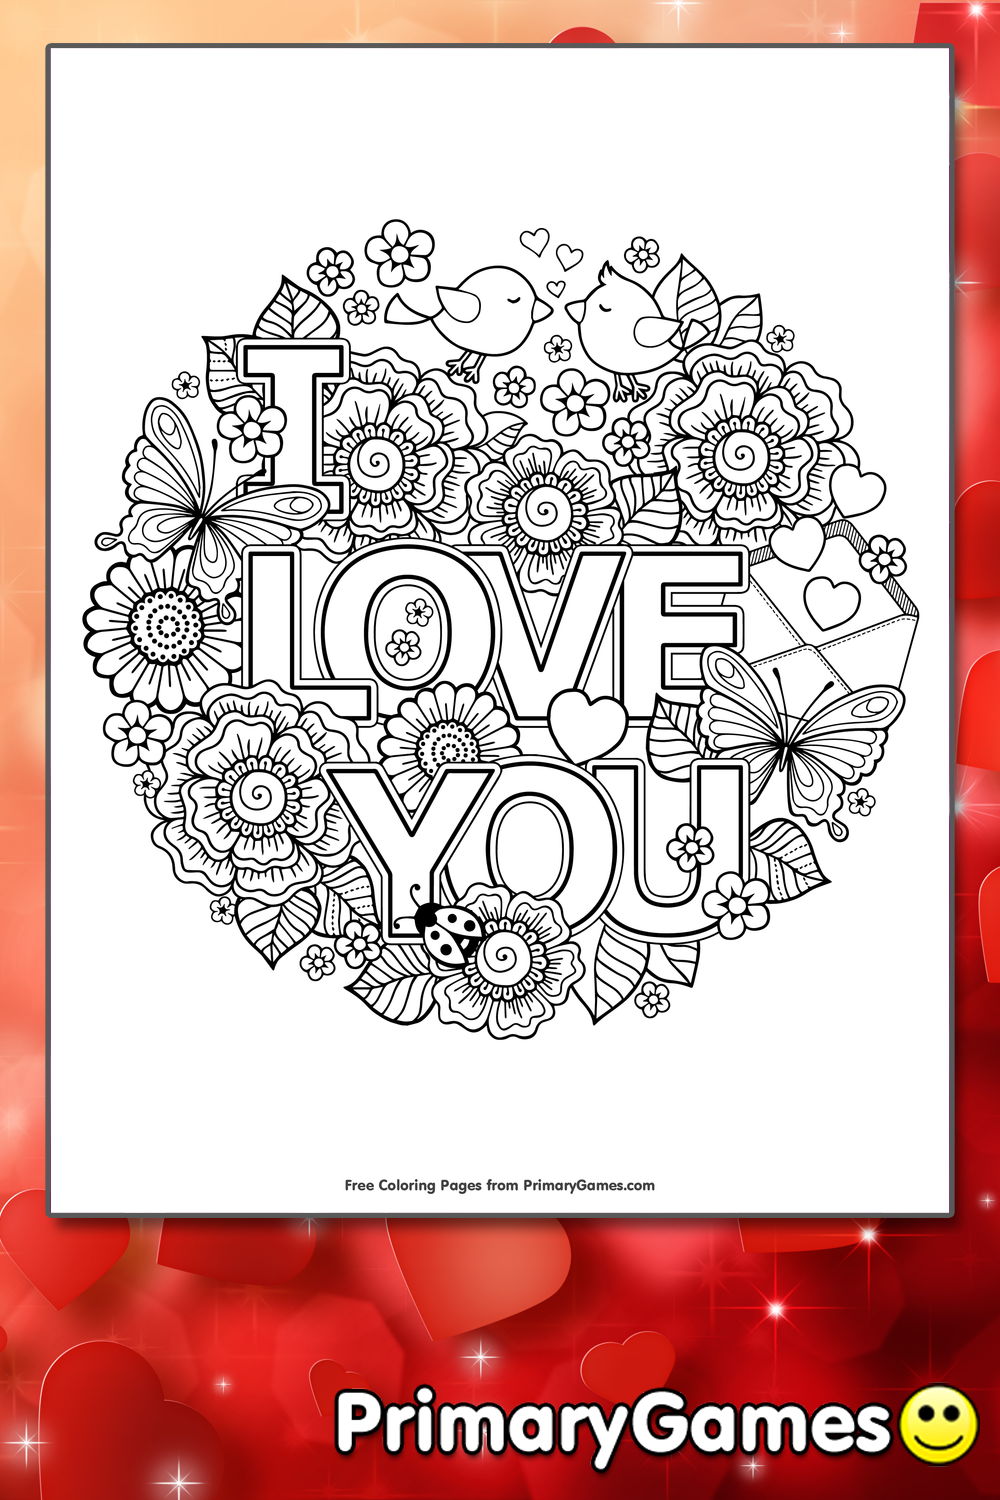 I Love You Coloring Pages Pdf : I love you coloring page printable valentine s day